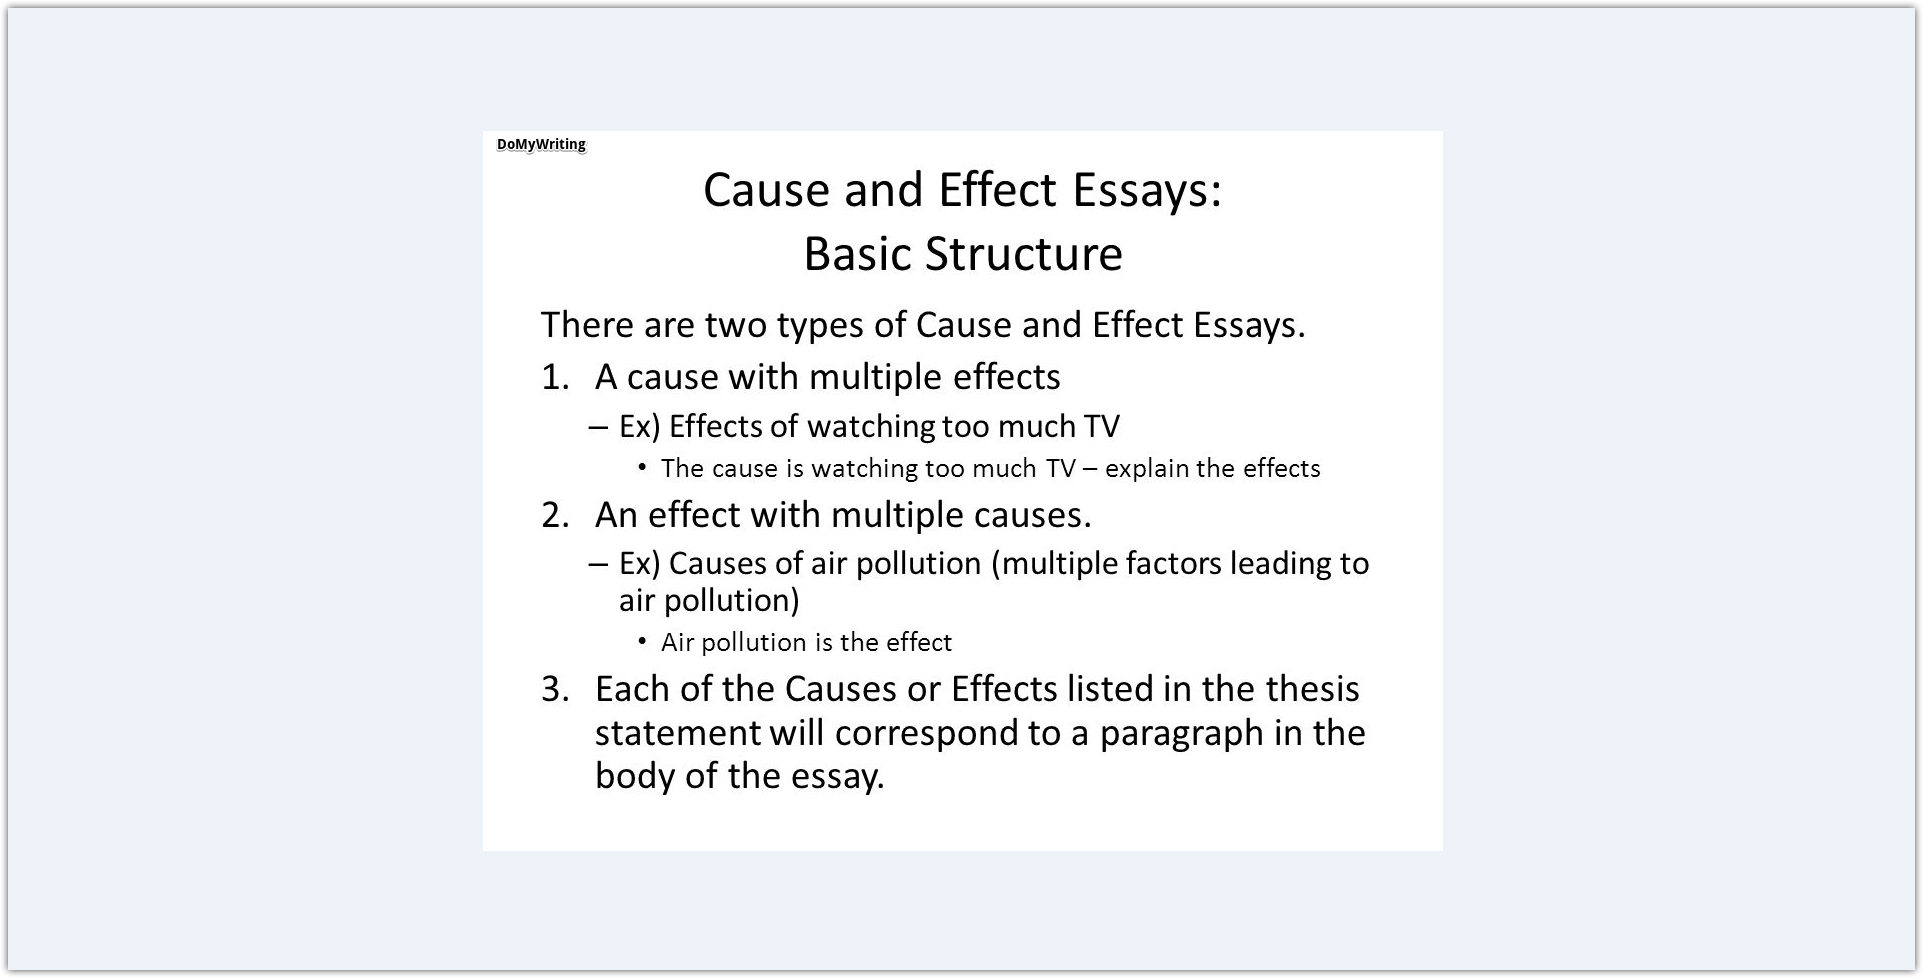 013 Cause And Effect Essay Topics Structure Dreaded Definition Pdf On Smoking During Pregnancy Example Bullying Full